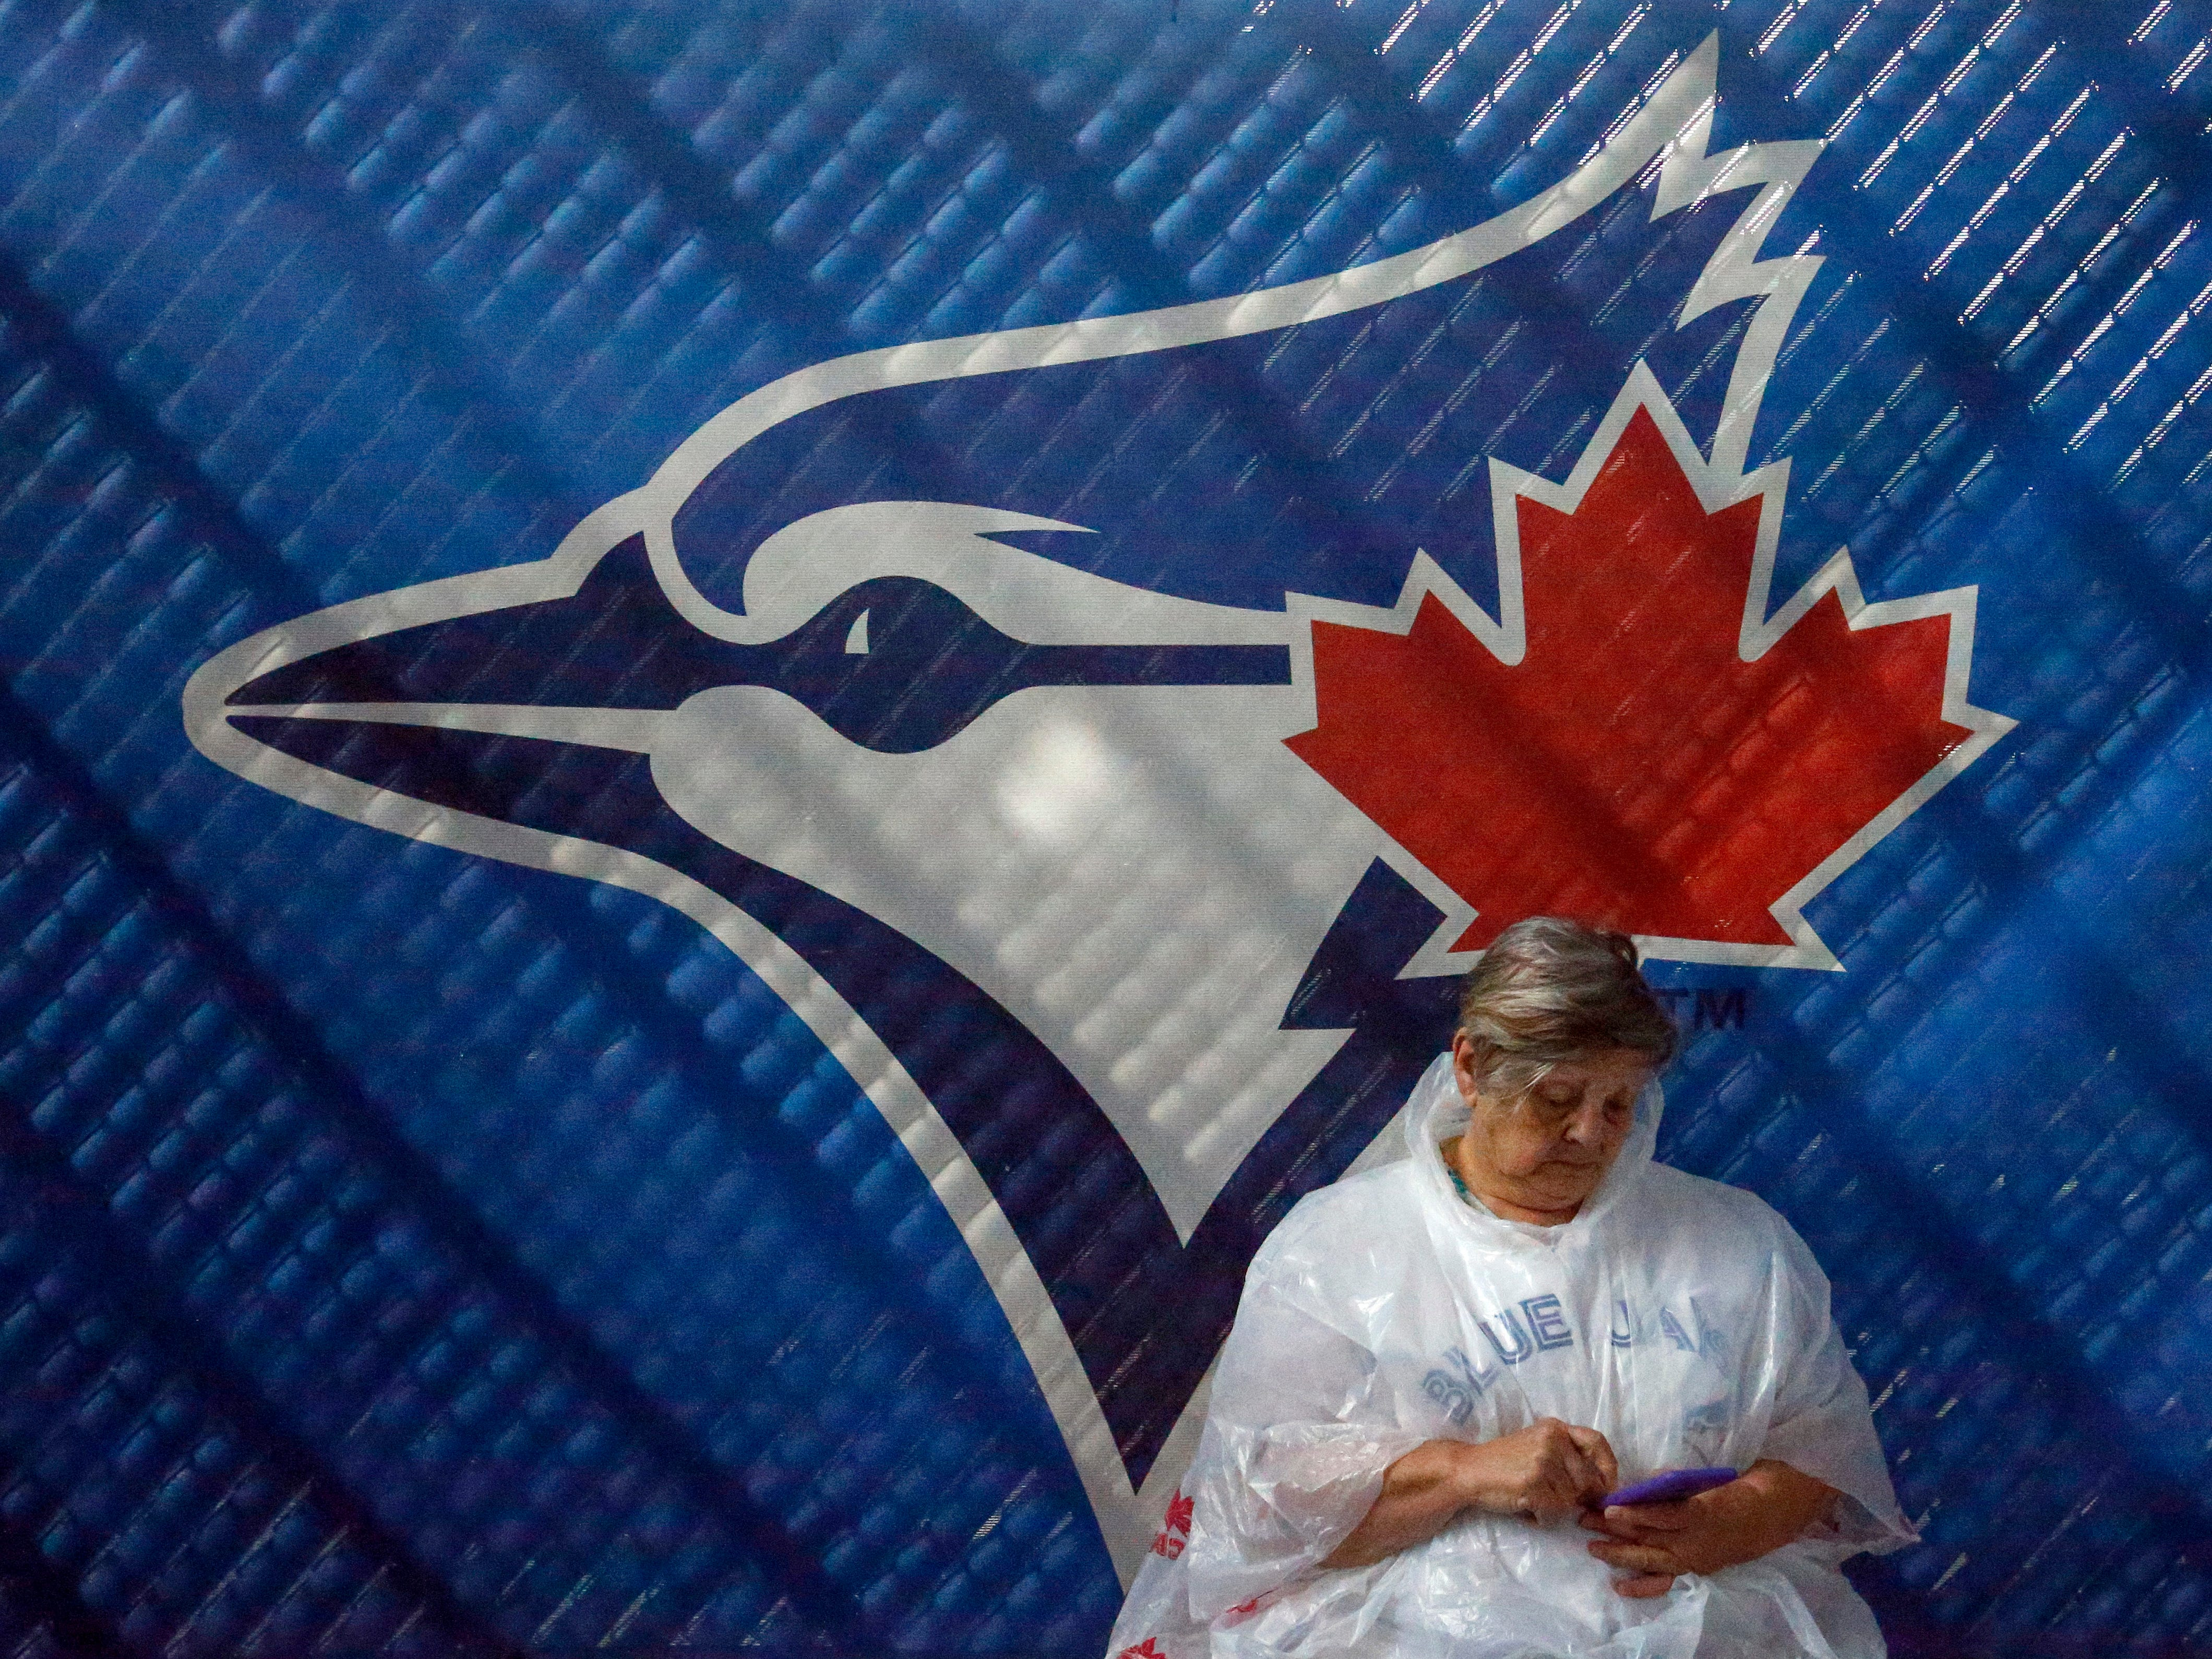 Feb. 26: Veronica Solomon, of Alberta, checks her phone while it rains. The Blue Jays game against the Red Sox was cancelled.